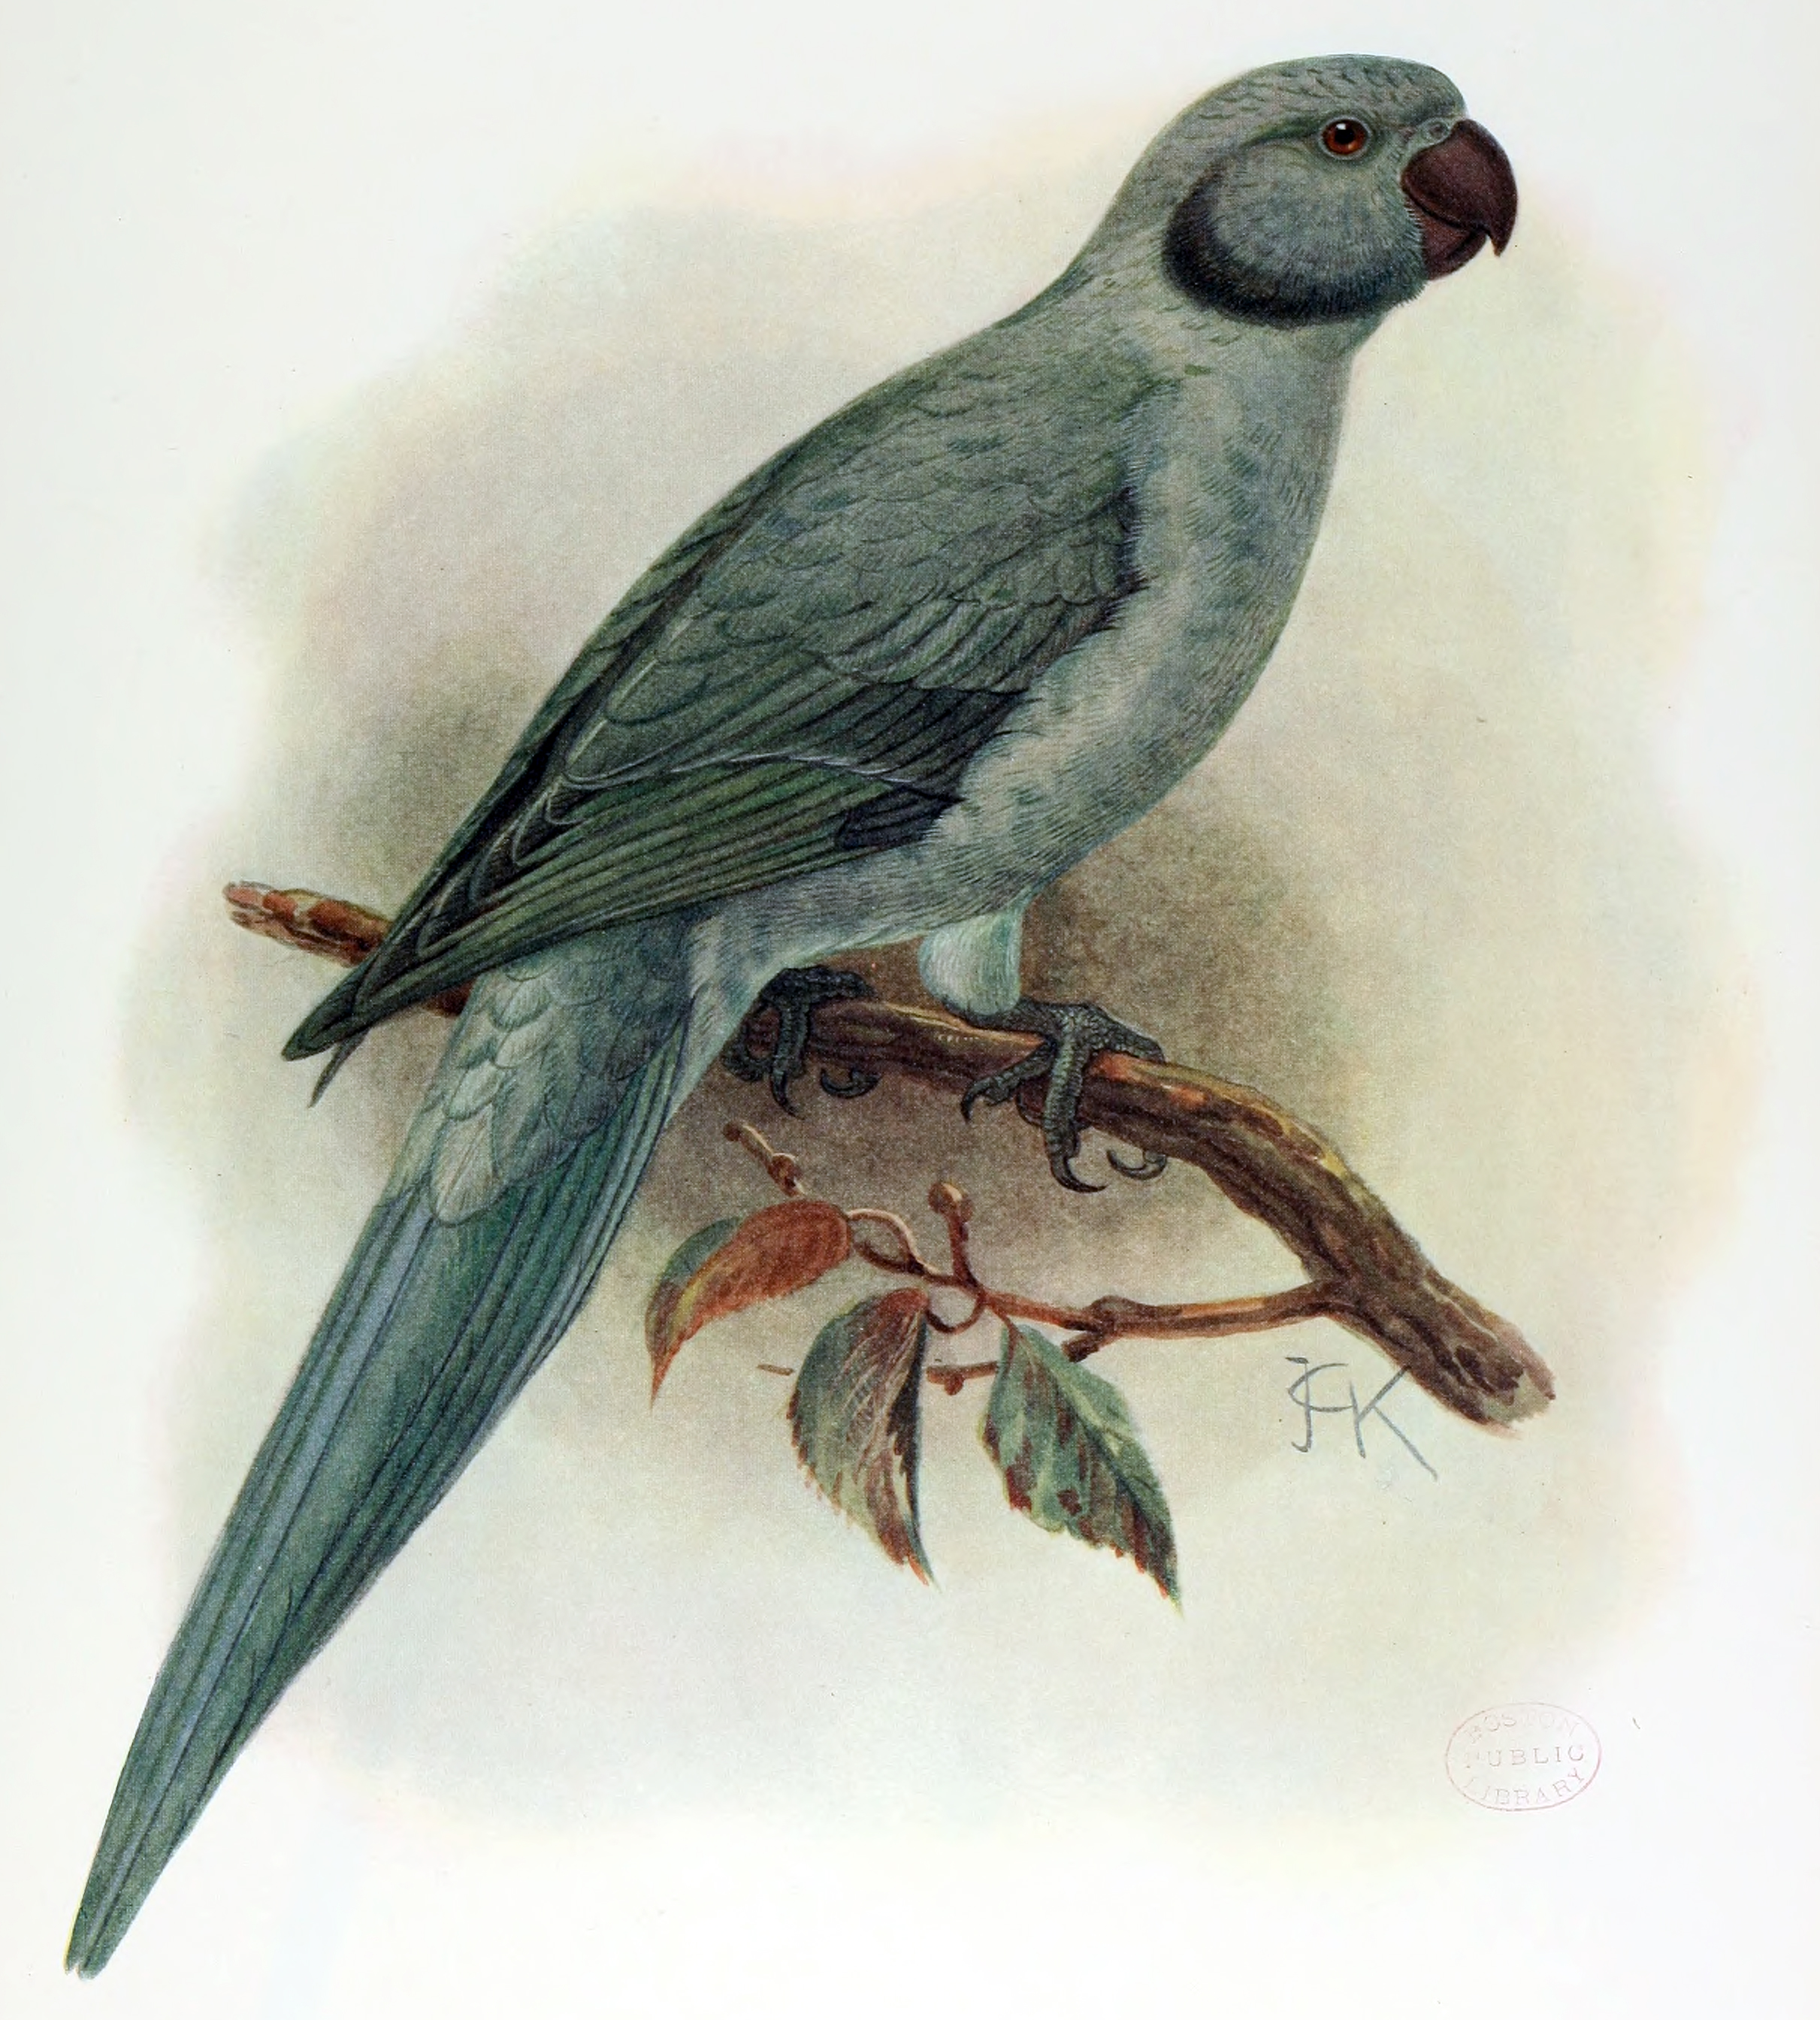 http://upload.wikimedia.org/wikipedia/commons/2/29/Psittacula_exsul_%28extinct%29_by_J.G._Keulemans.jpg